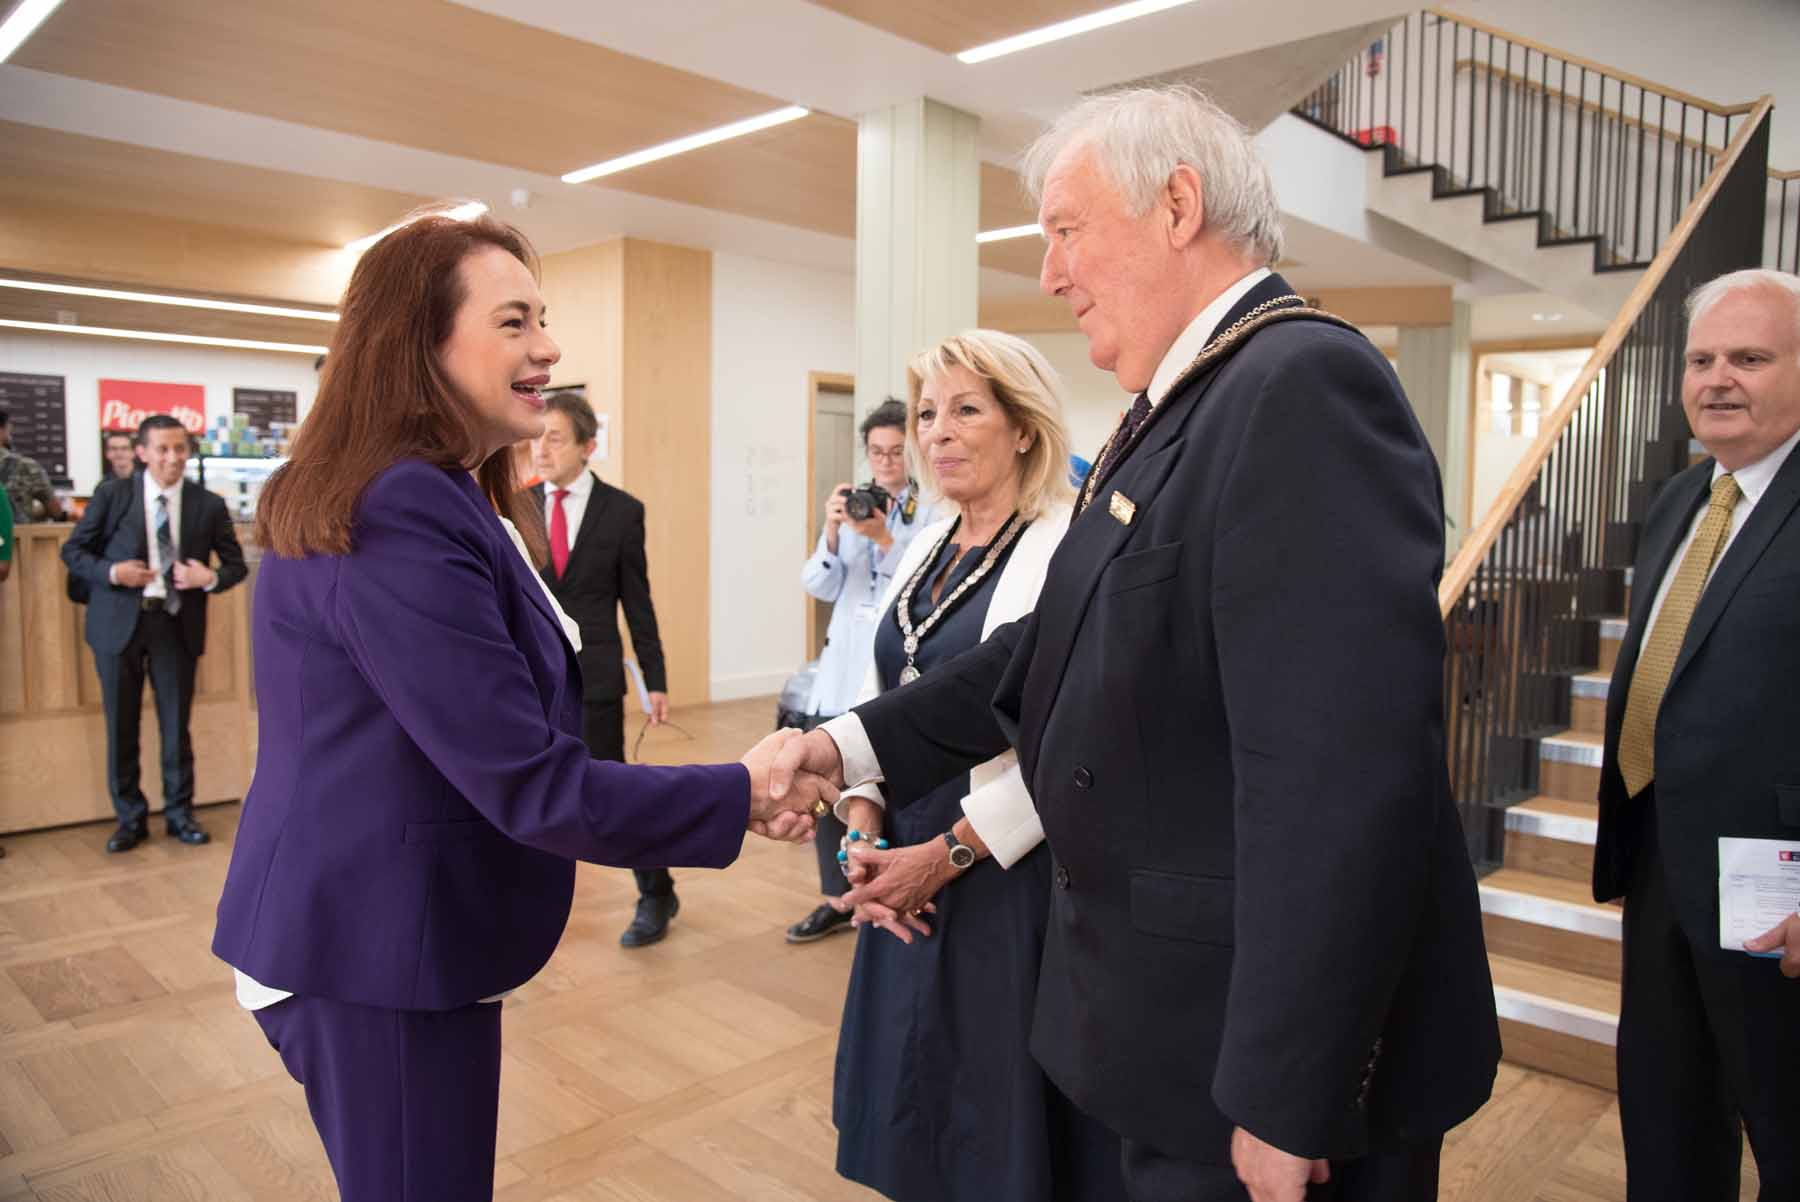 Mayor of Buckingham meets the President of the General Assembly at the UN UN president